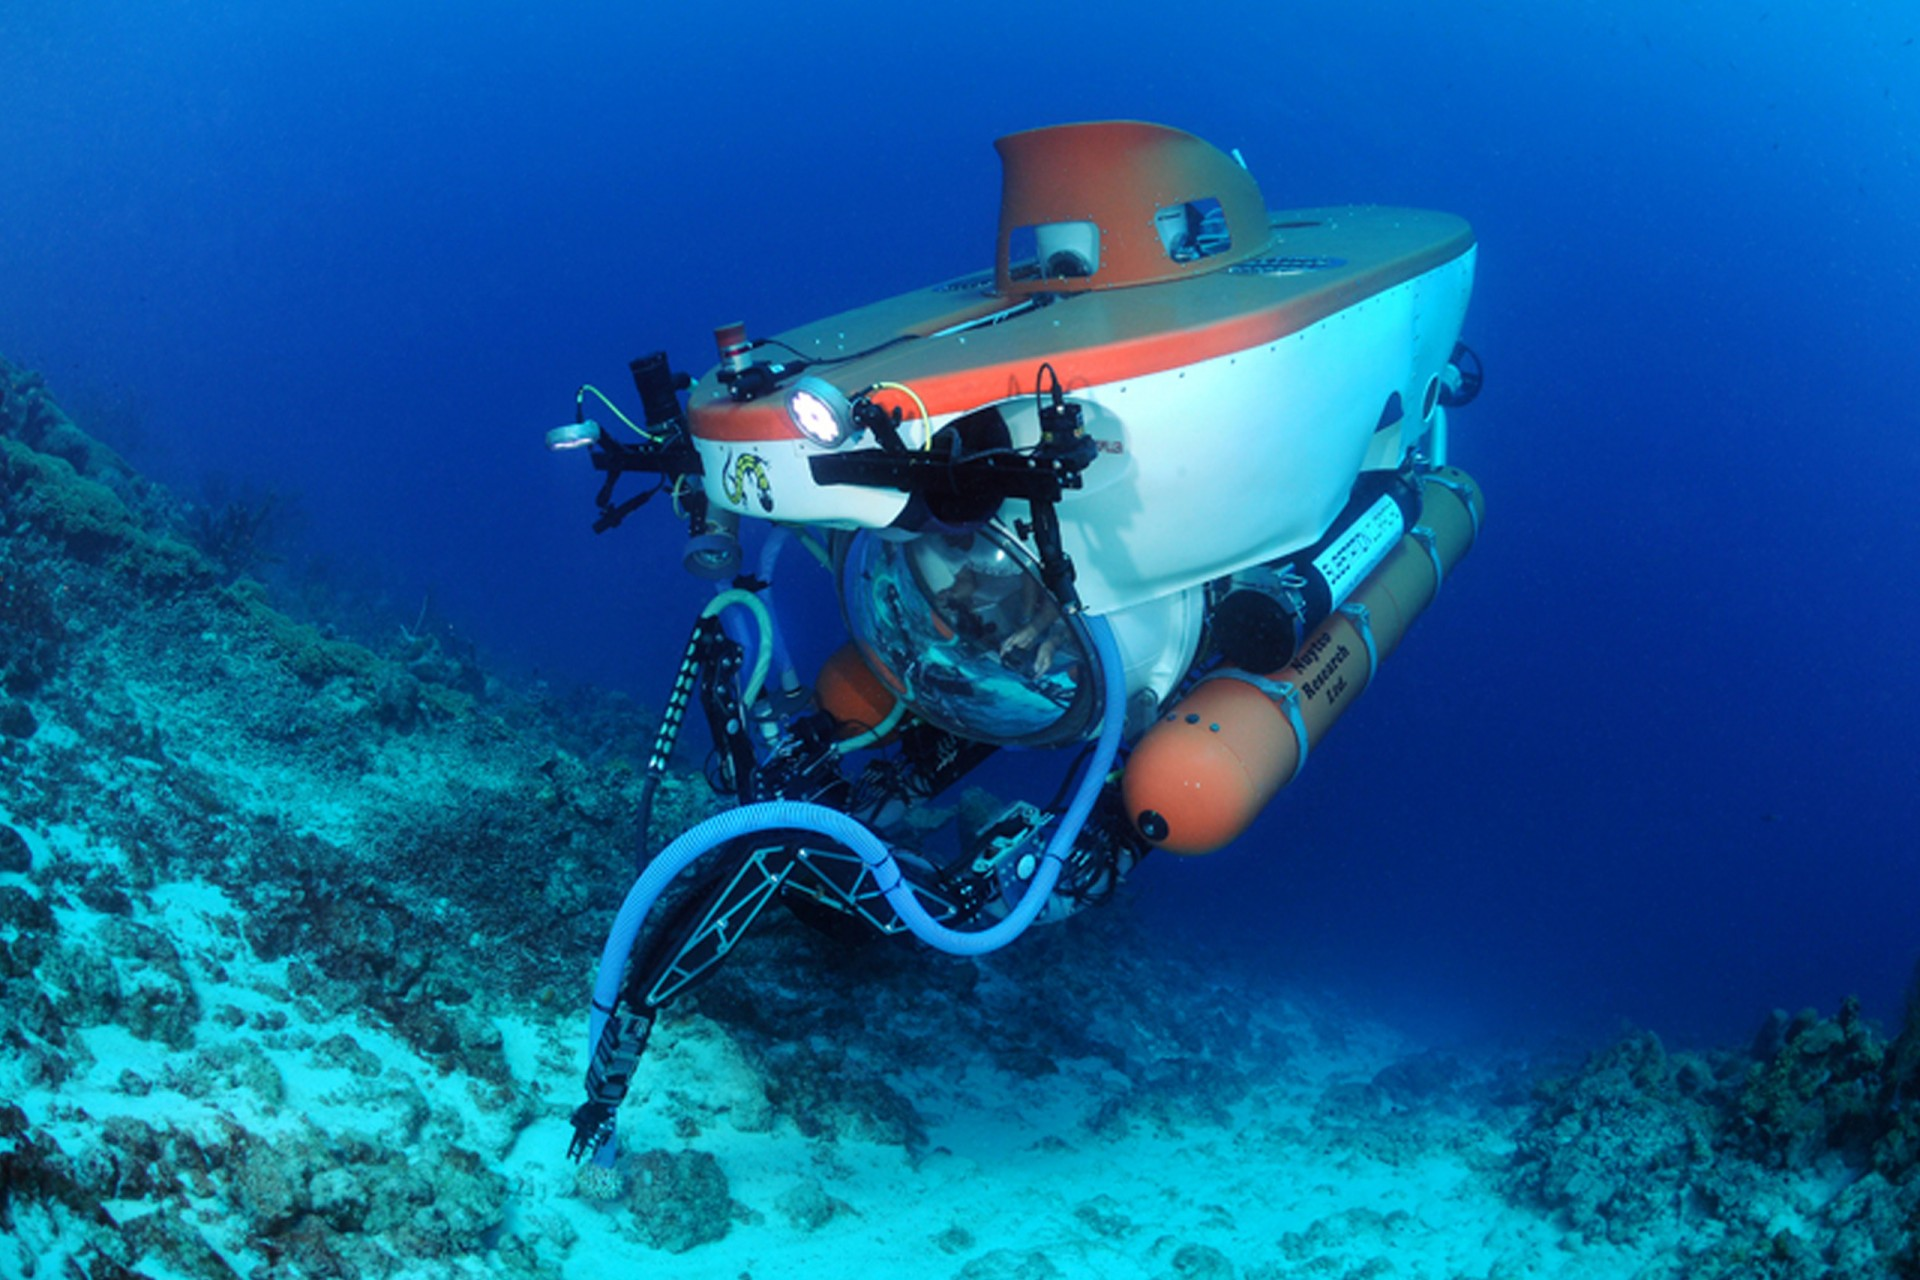 The Deep Reef Observation Project (DROP) at the Smithsonian uses this wo/manned submersible